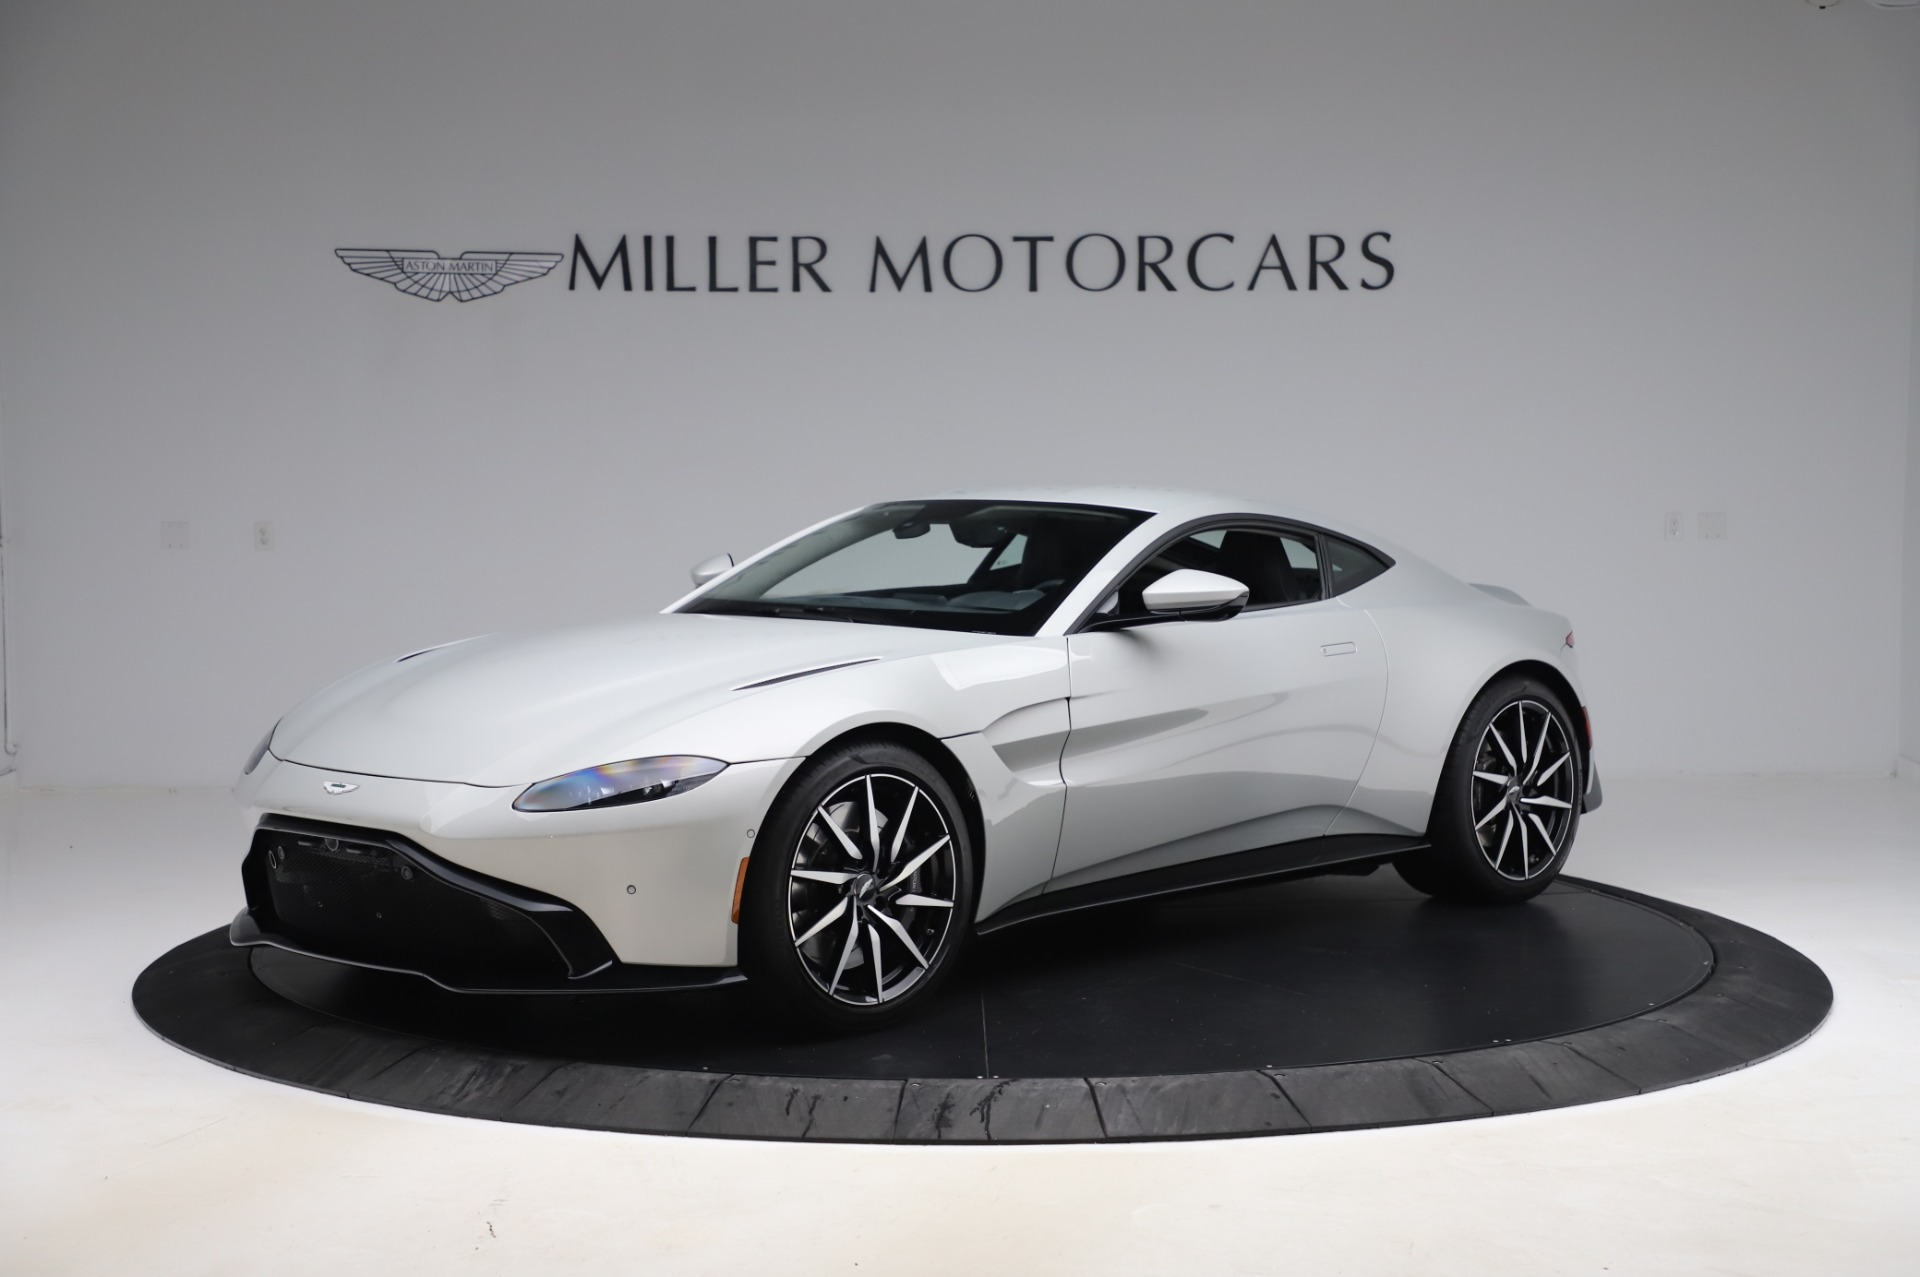 Used 2020 Aston Martin Vantage Coupe for sale $149,800 at Pagani of Greenwich in Greenwich CT 06830 1